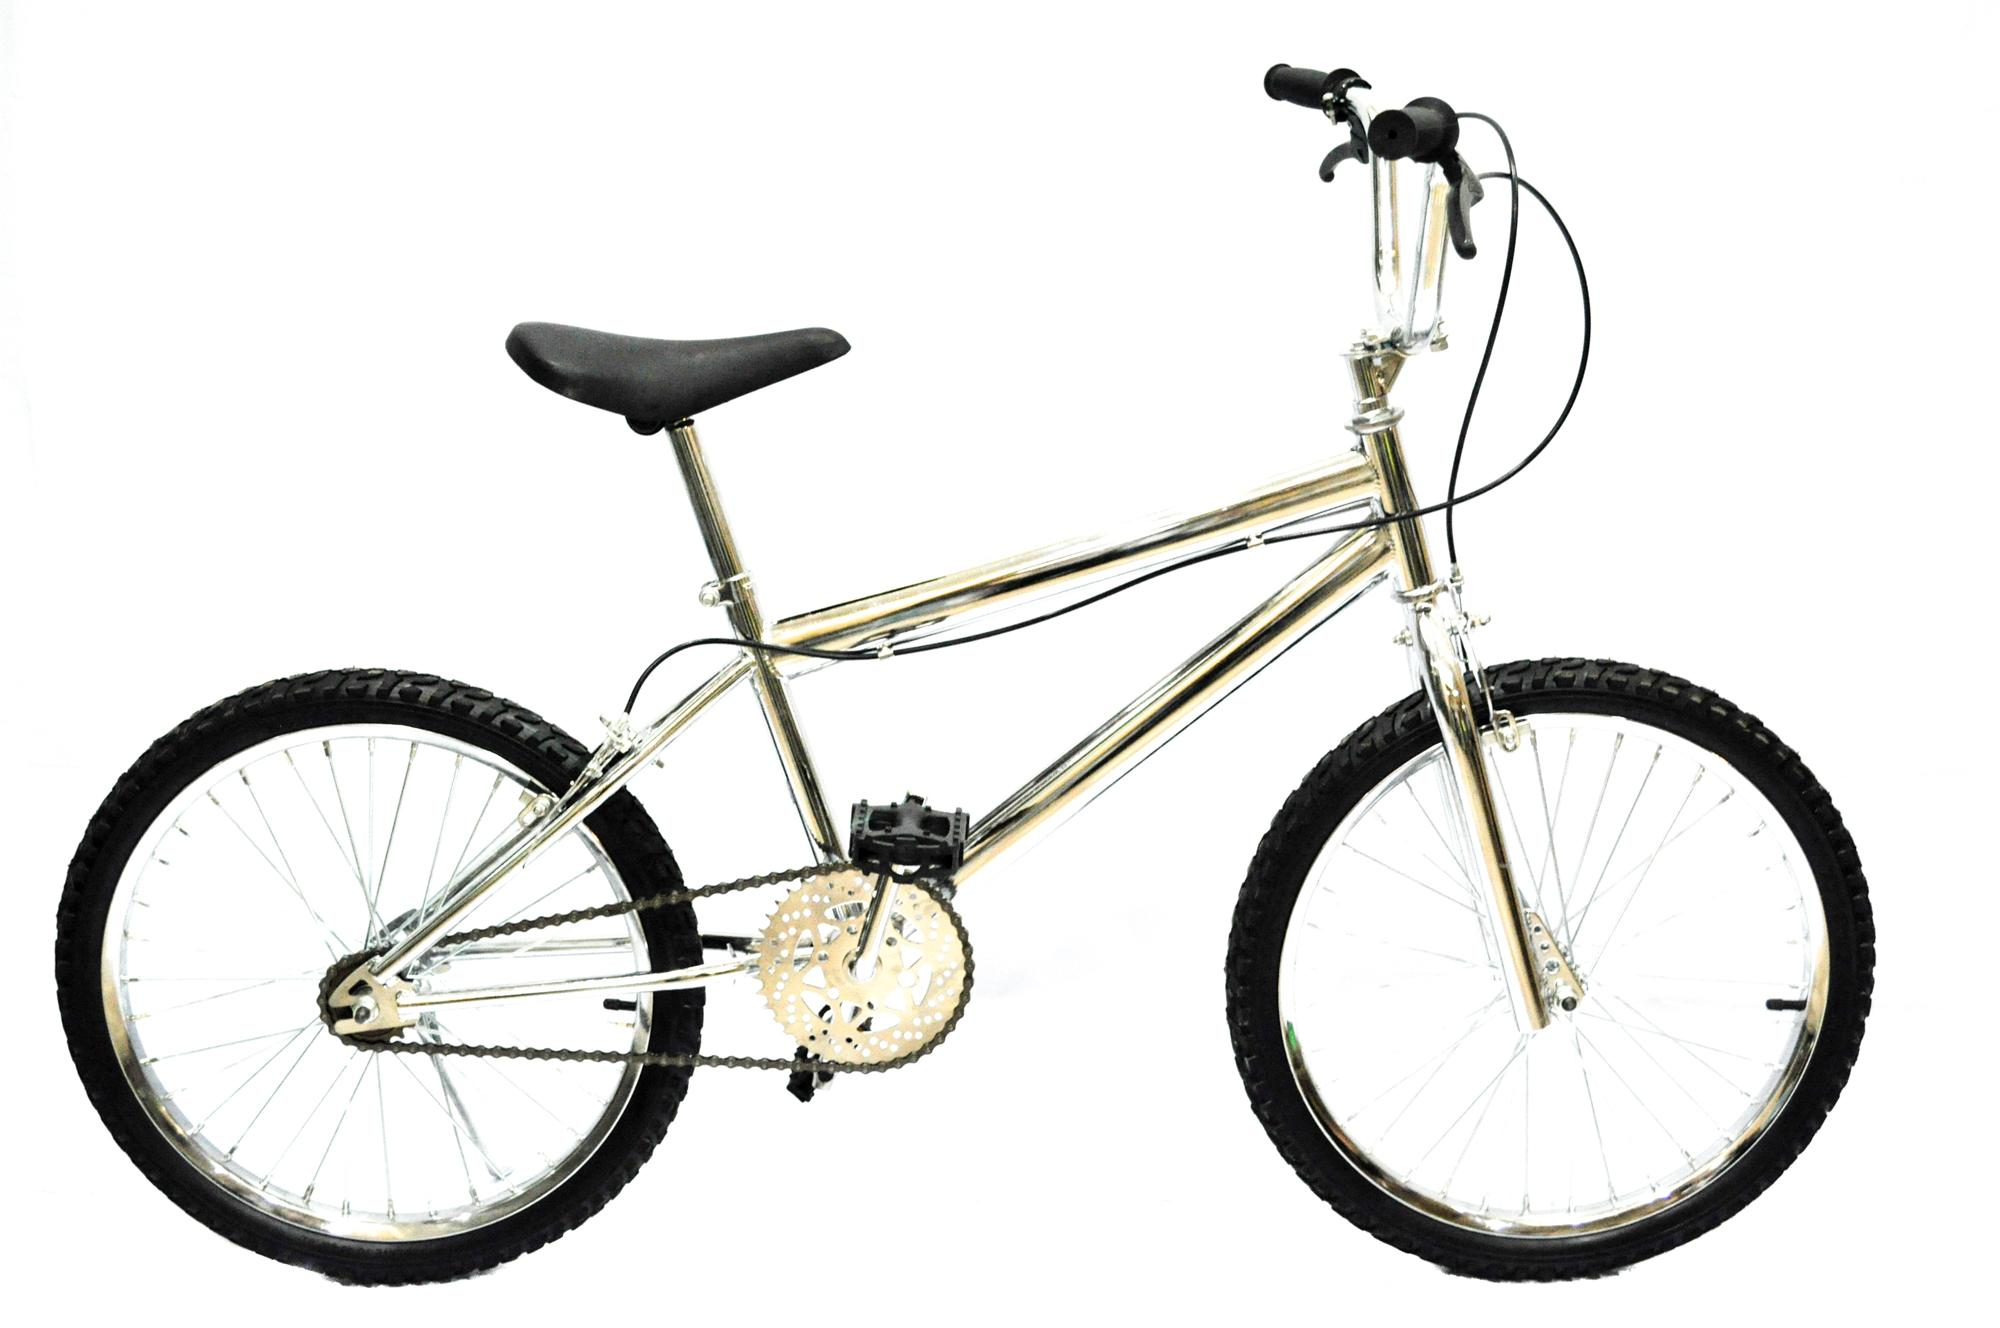 BMX for sale - BMX Bikes online brands, prices & reviews in ...